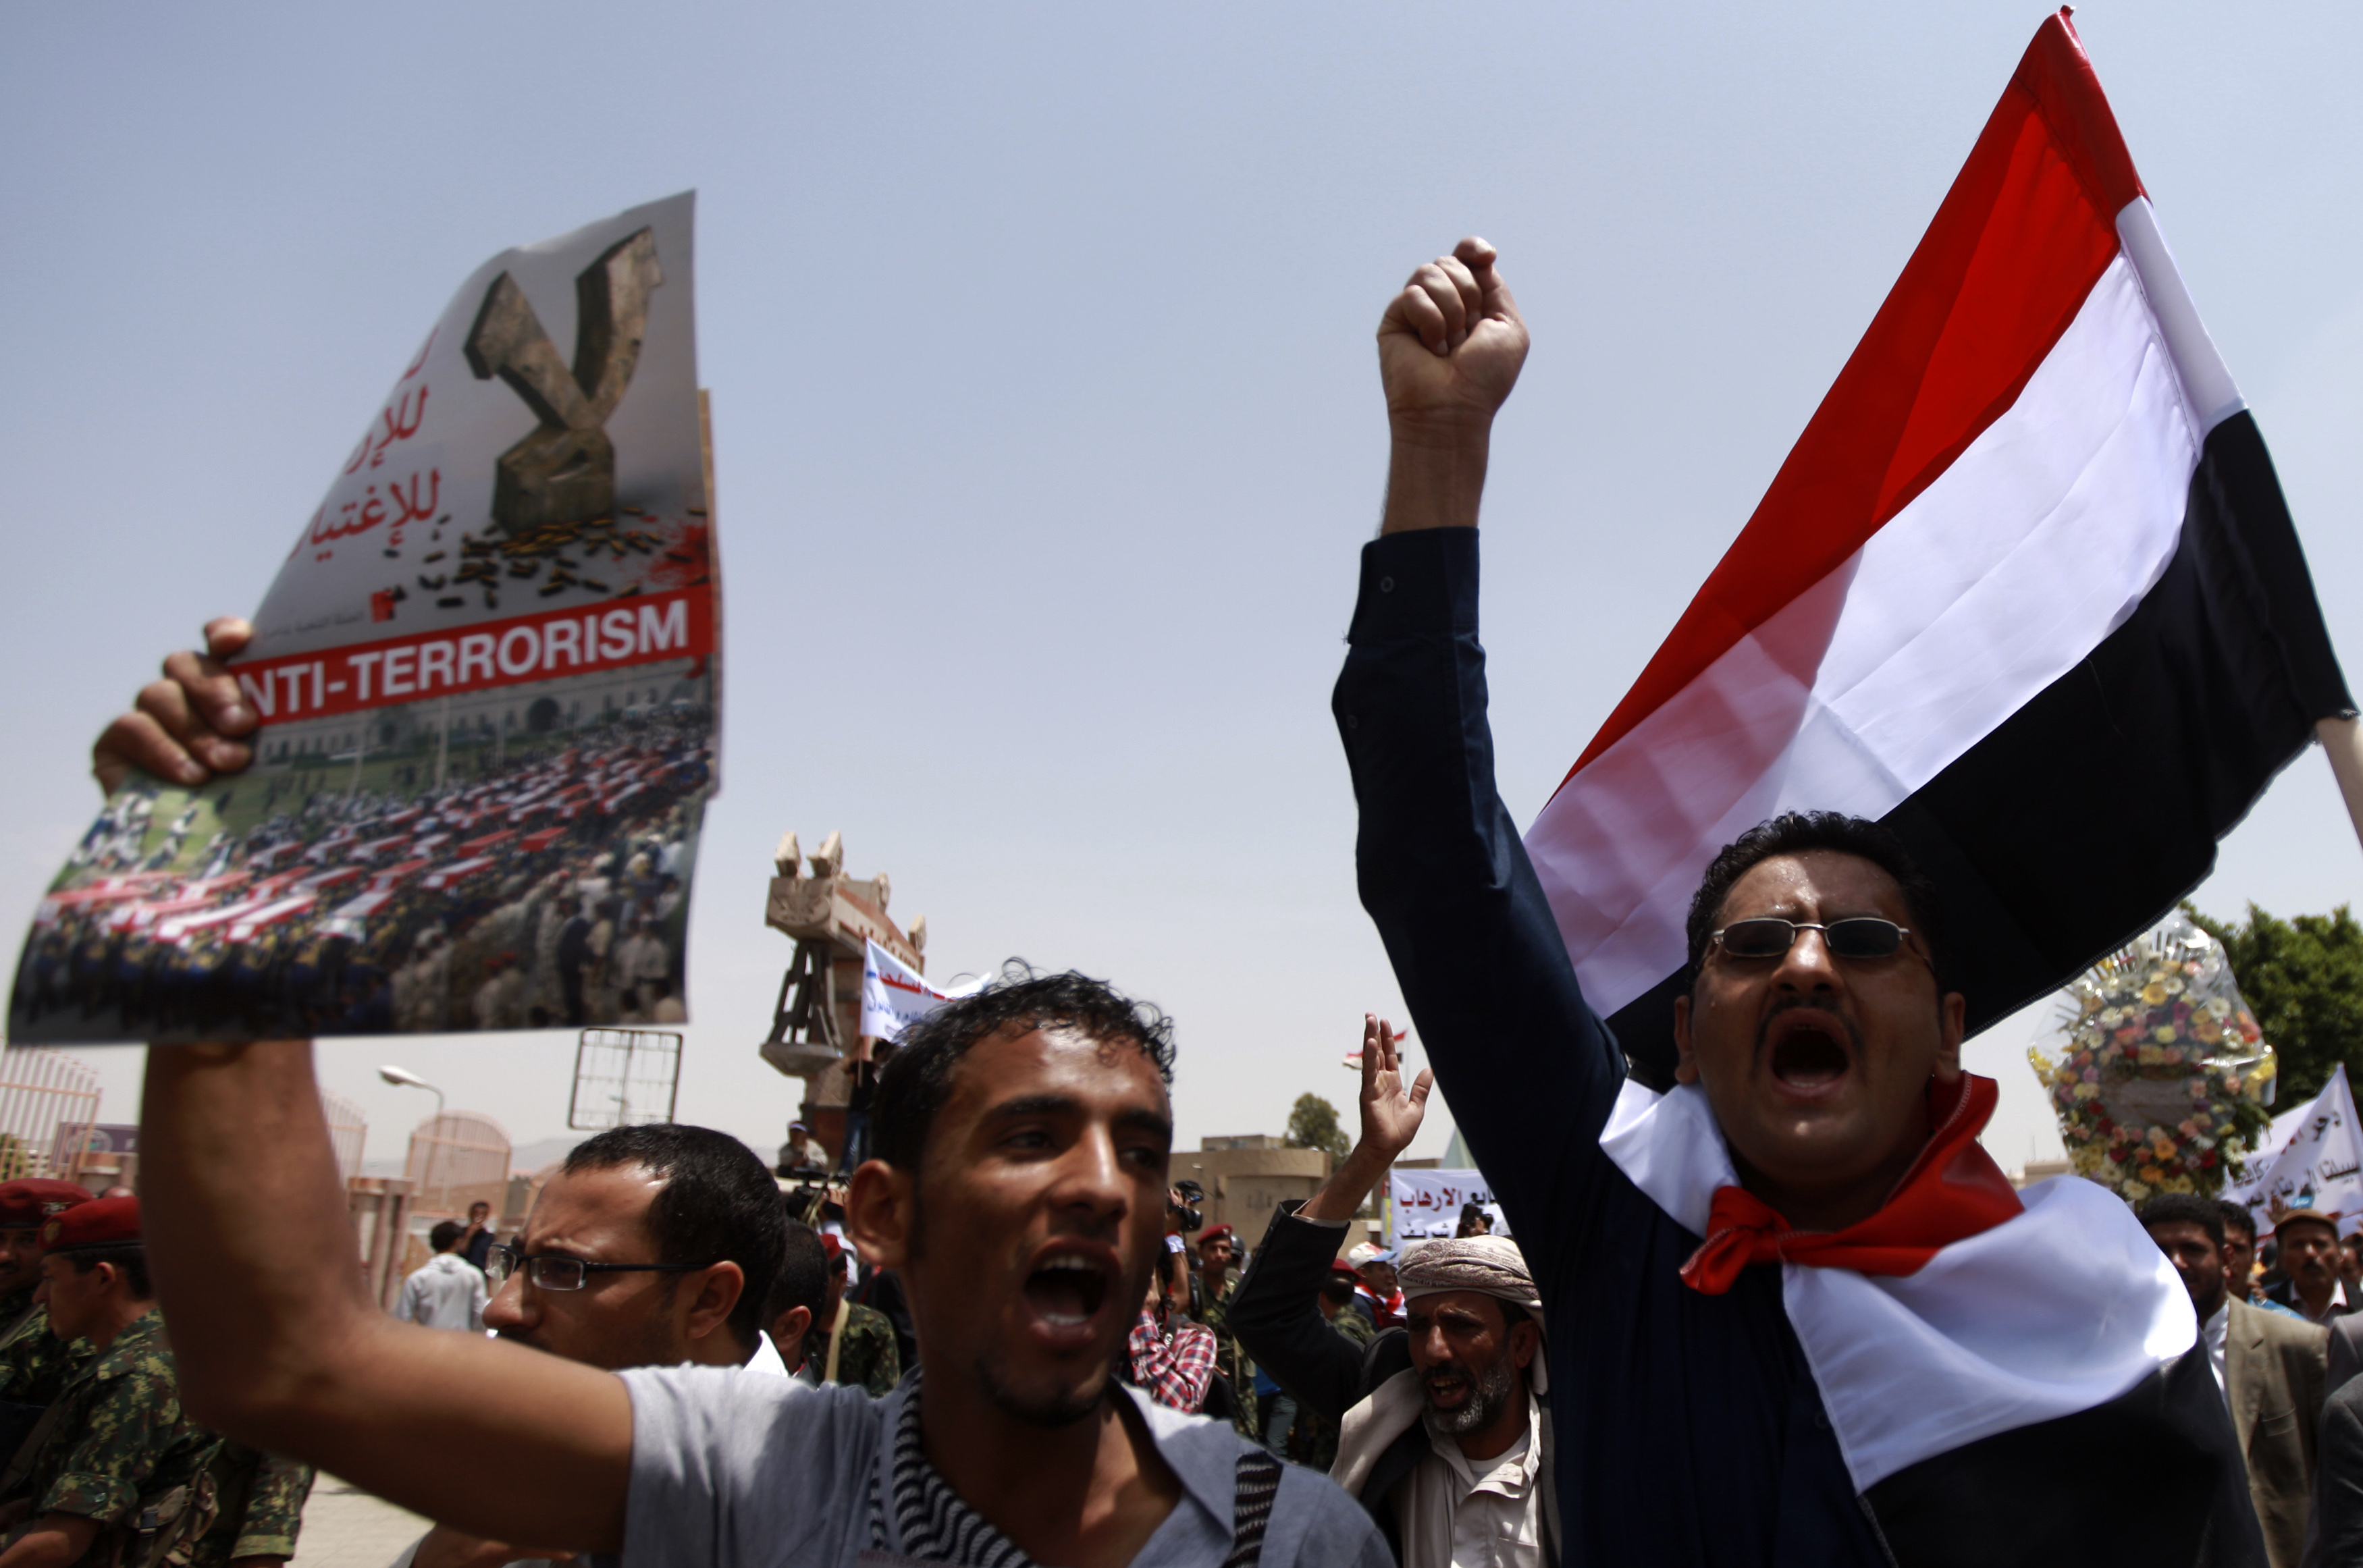 FILE - People shout slogans in support of the Yemen army and security forces in a U.S.-backed campaign against militant network al-Qaida in the Arabian Peninsula (AQAP), in Sana'a, May 21, 2014.